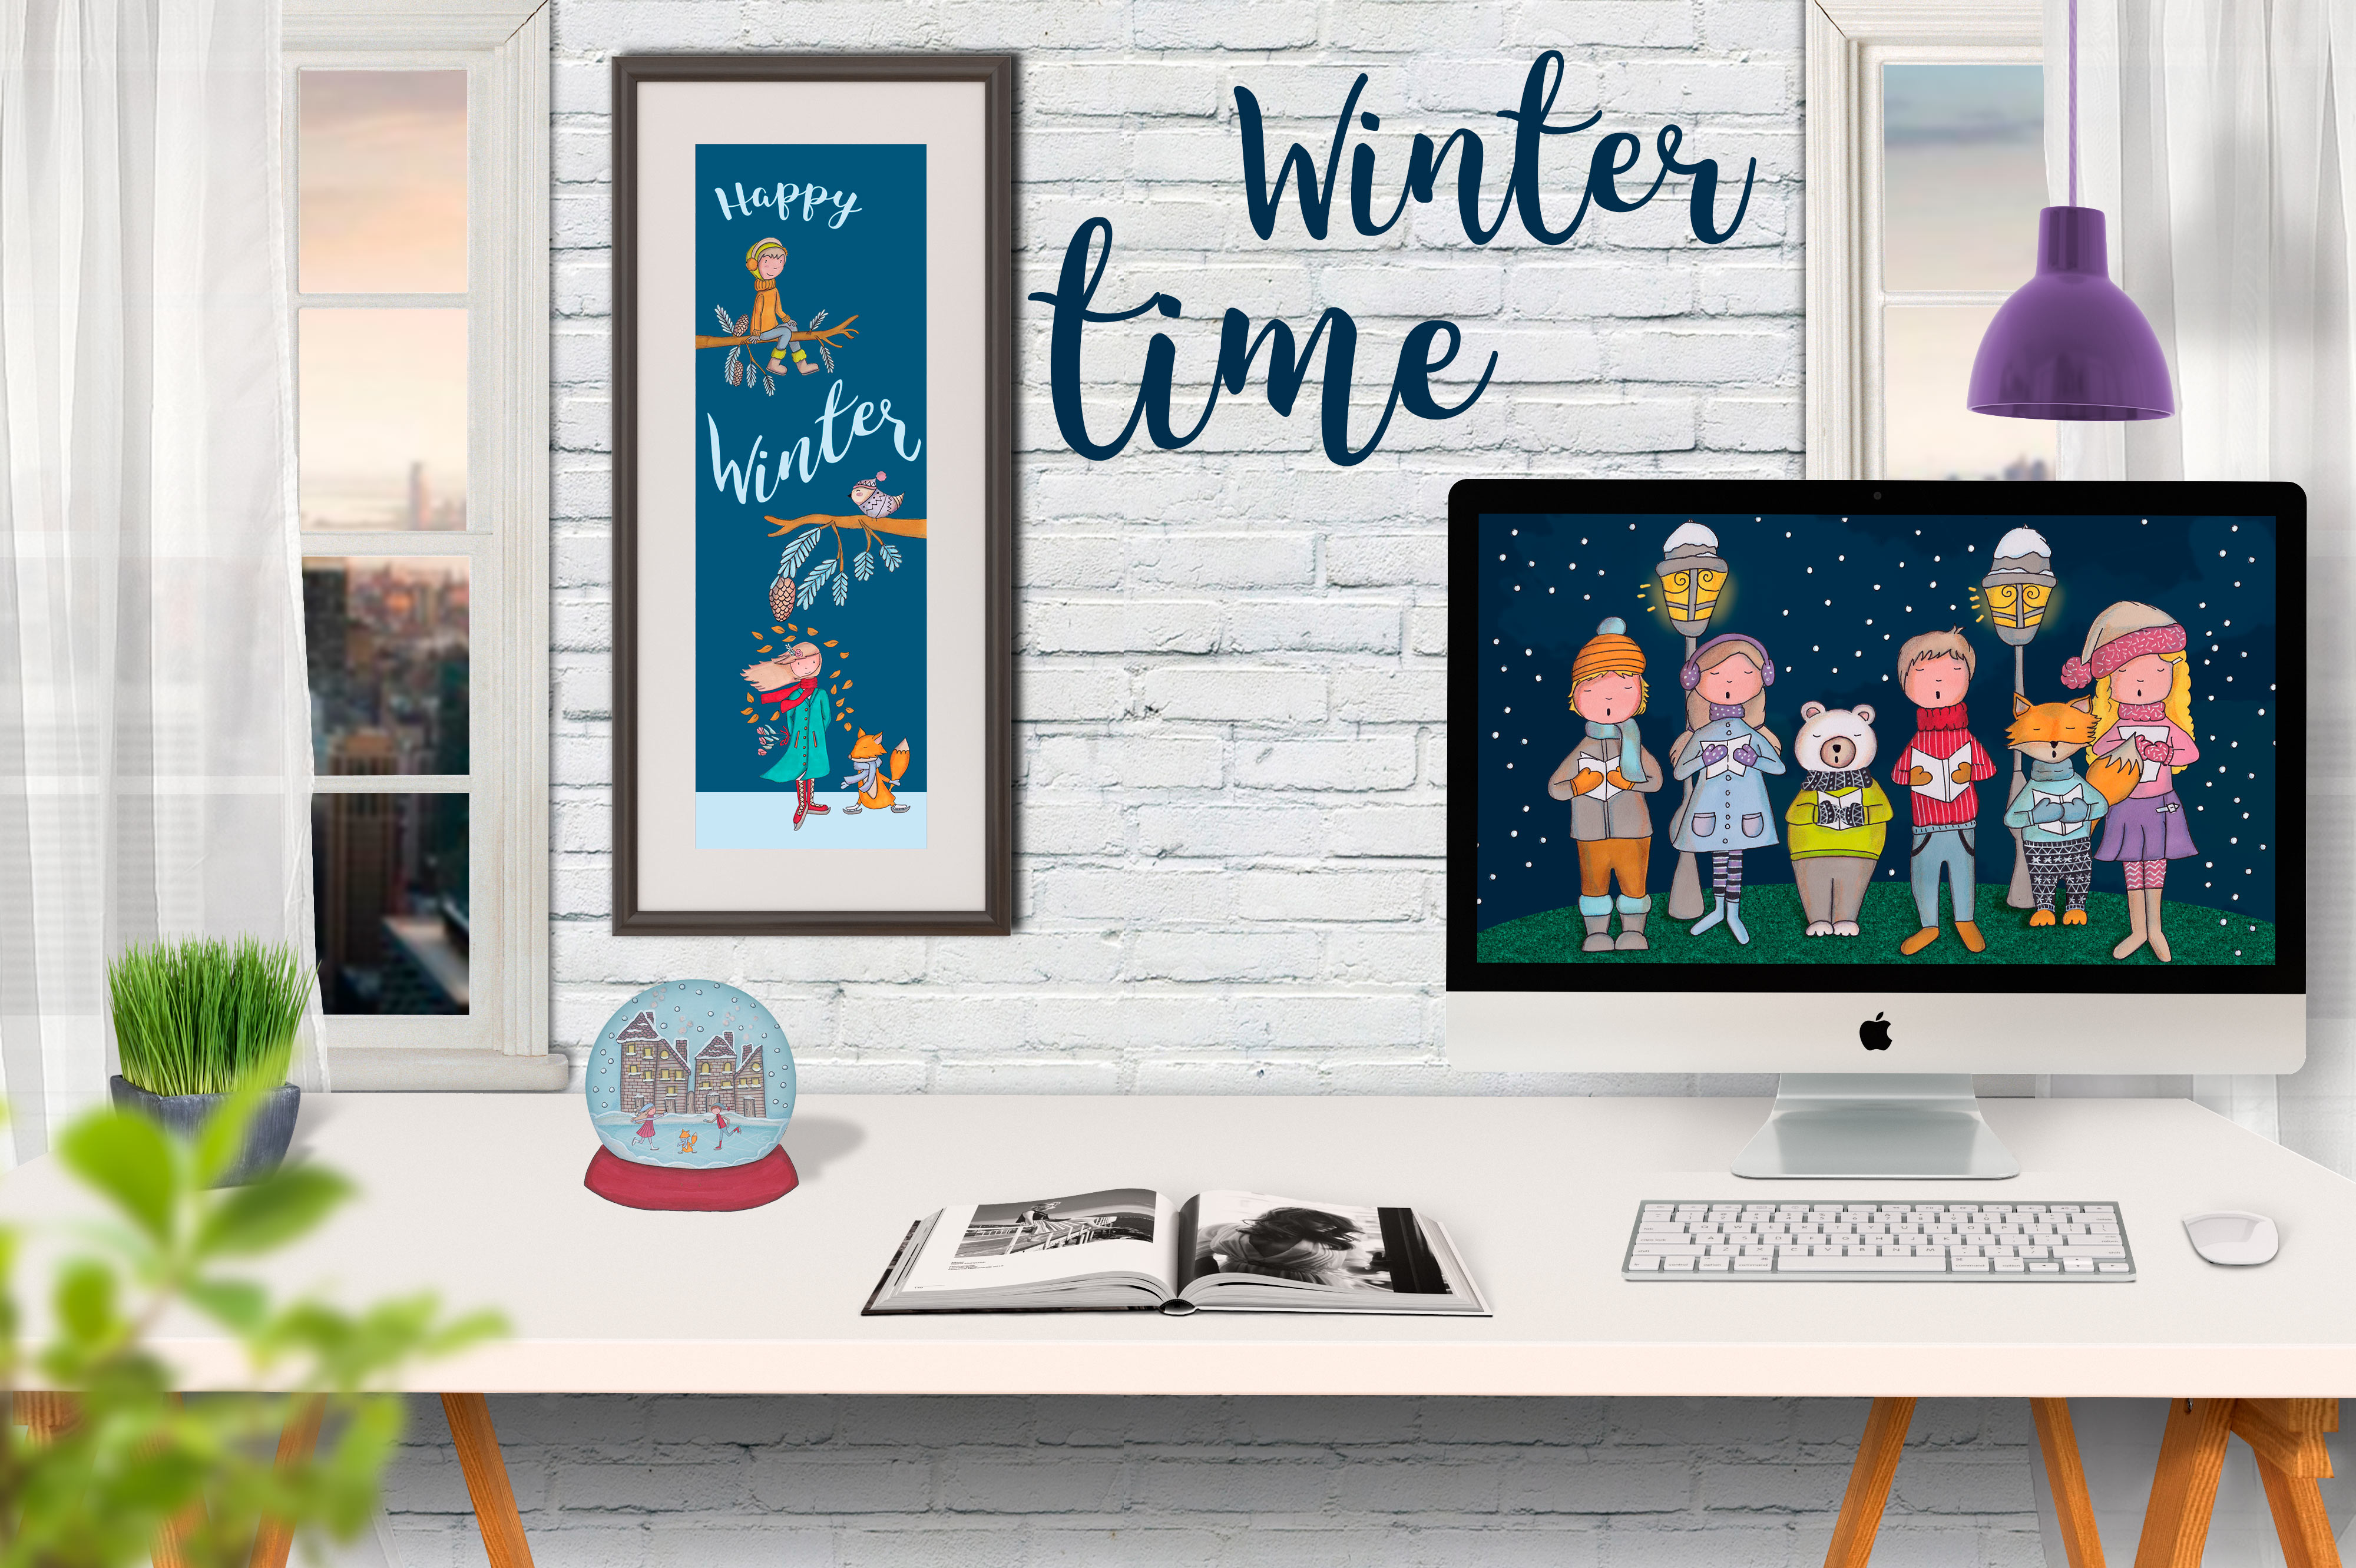 Happy Winter Time! example image 5